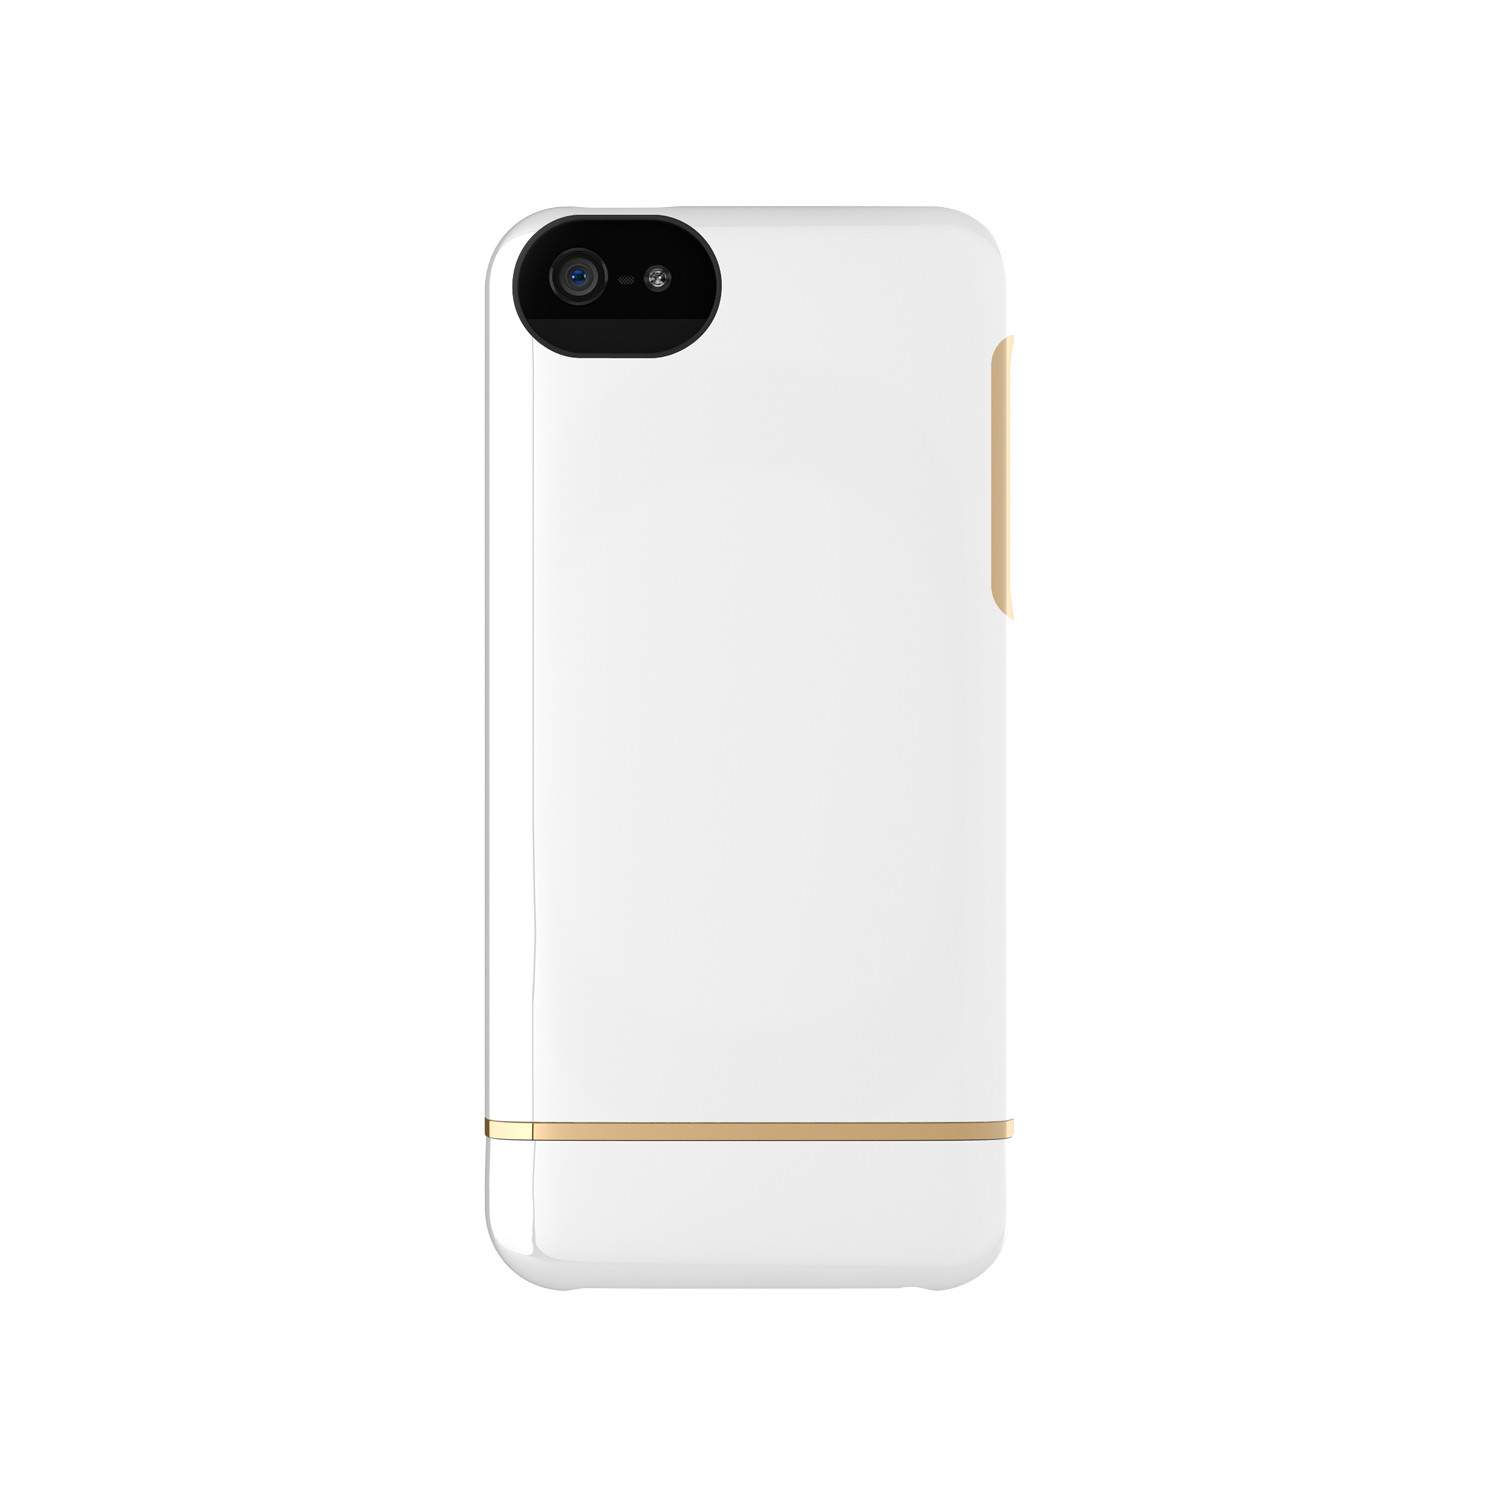 iphone 5s white and gold forged for iphone 5 5s white gold adopted 3302